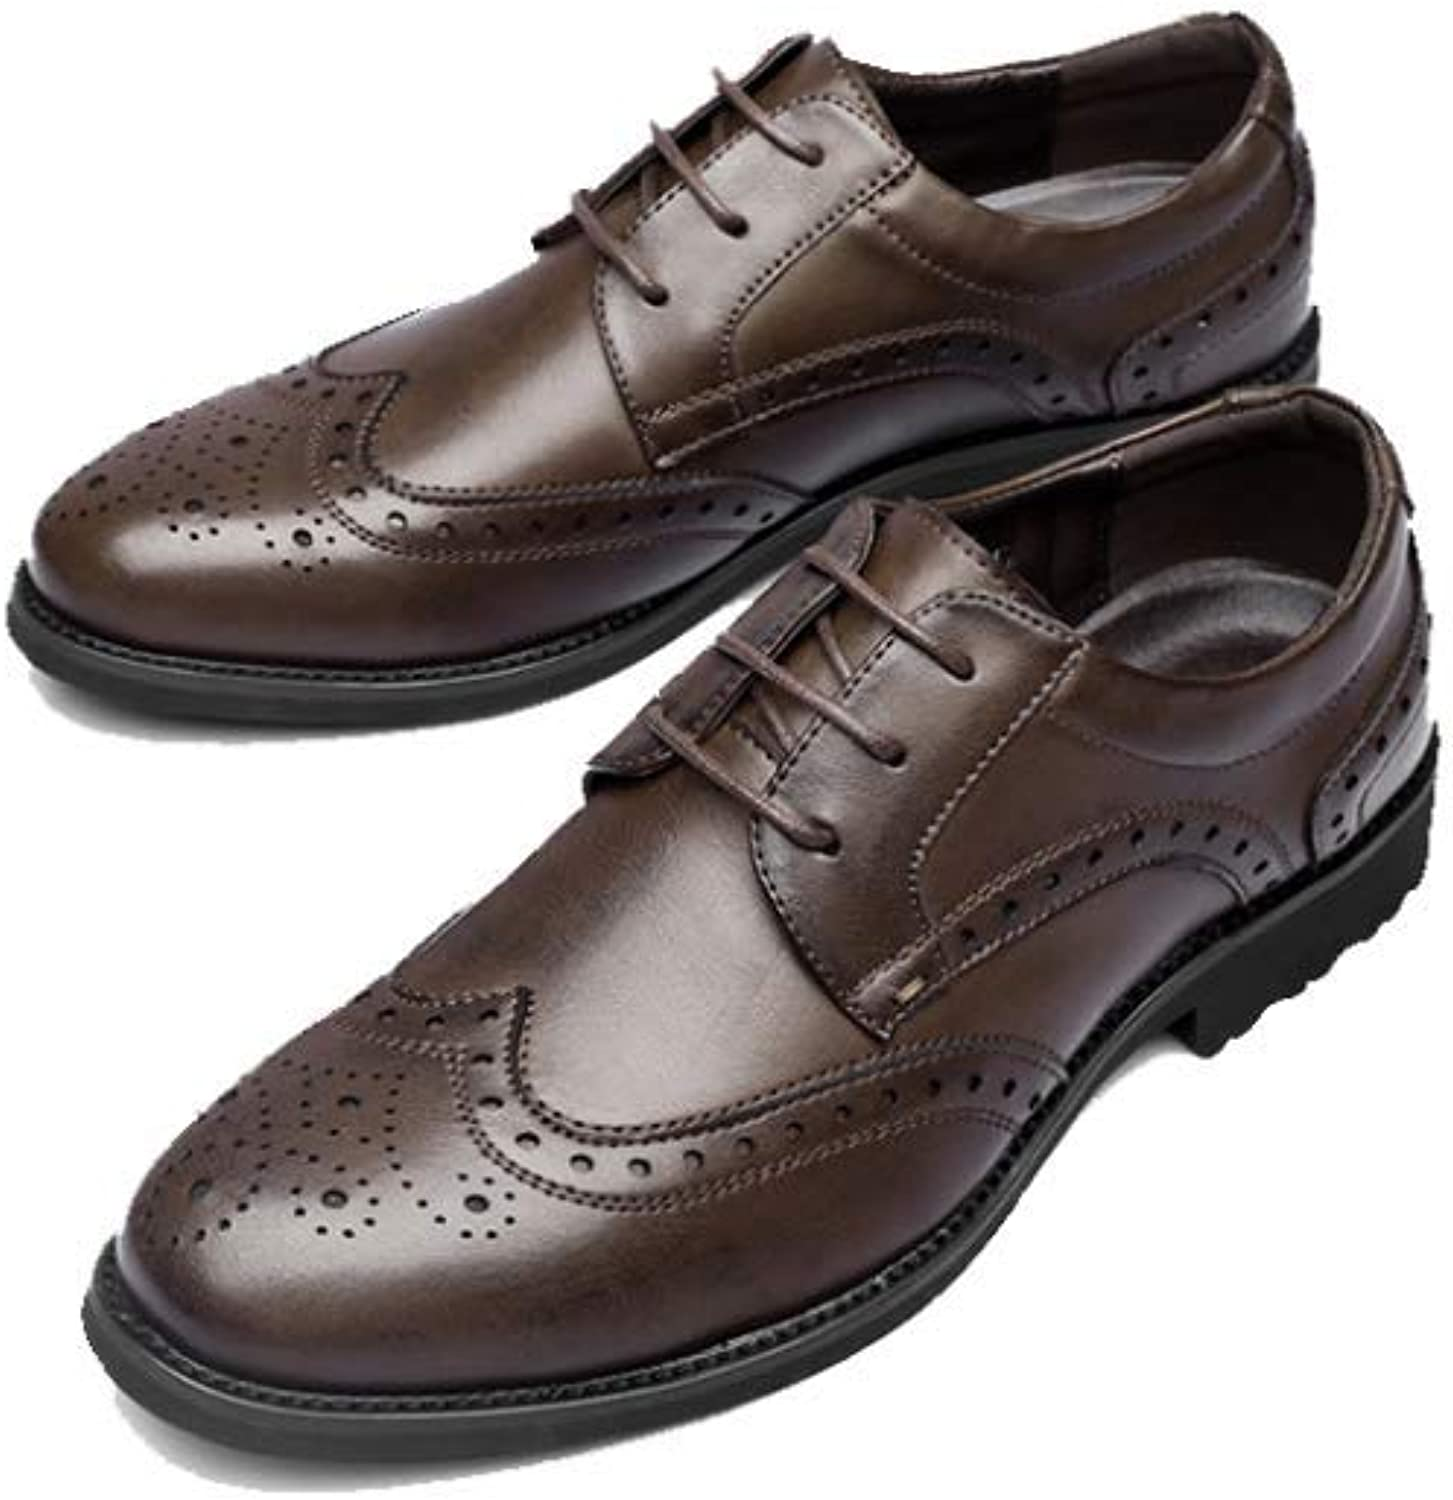 AEYMF Autumn and Winter Men's Casual shoes Brock Carved Men's shoes Breathable